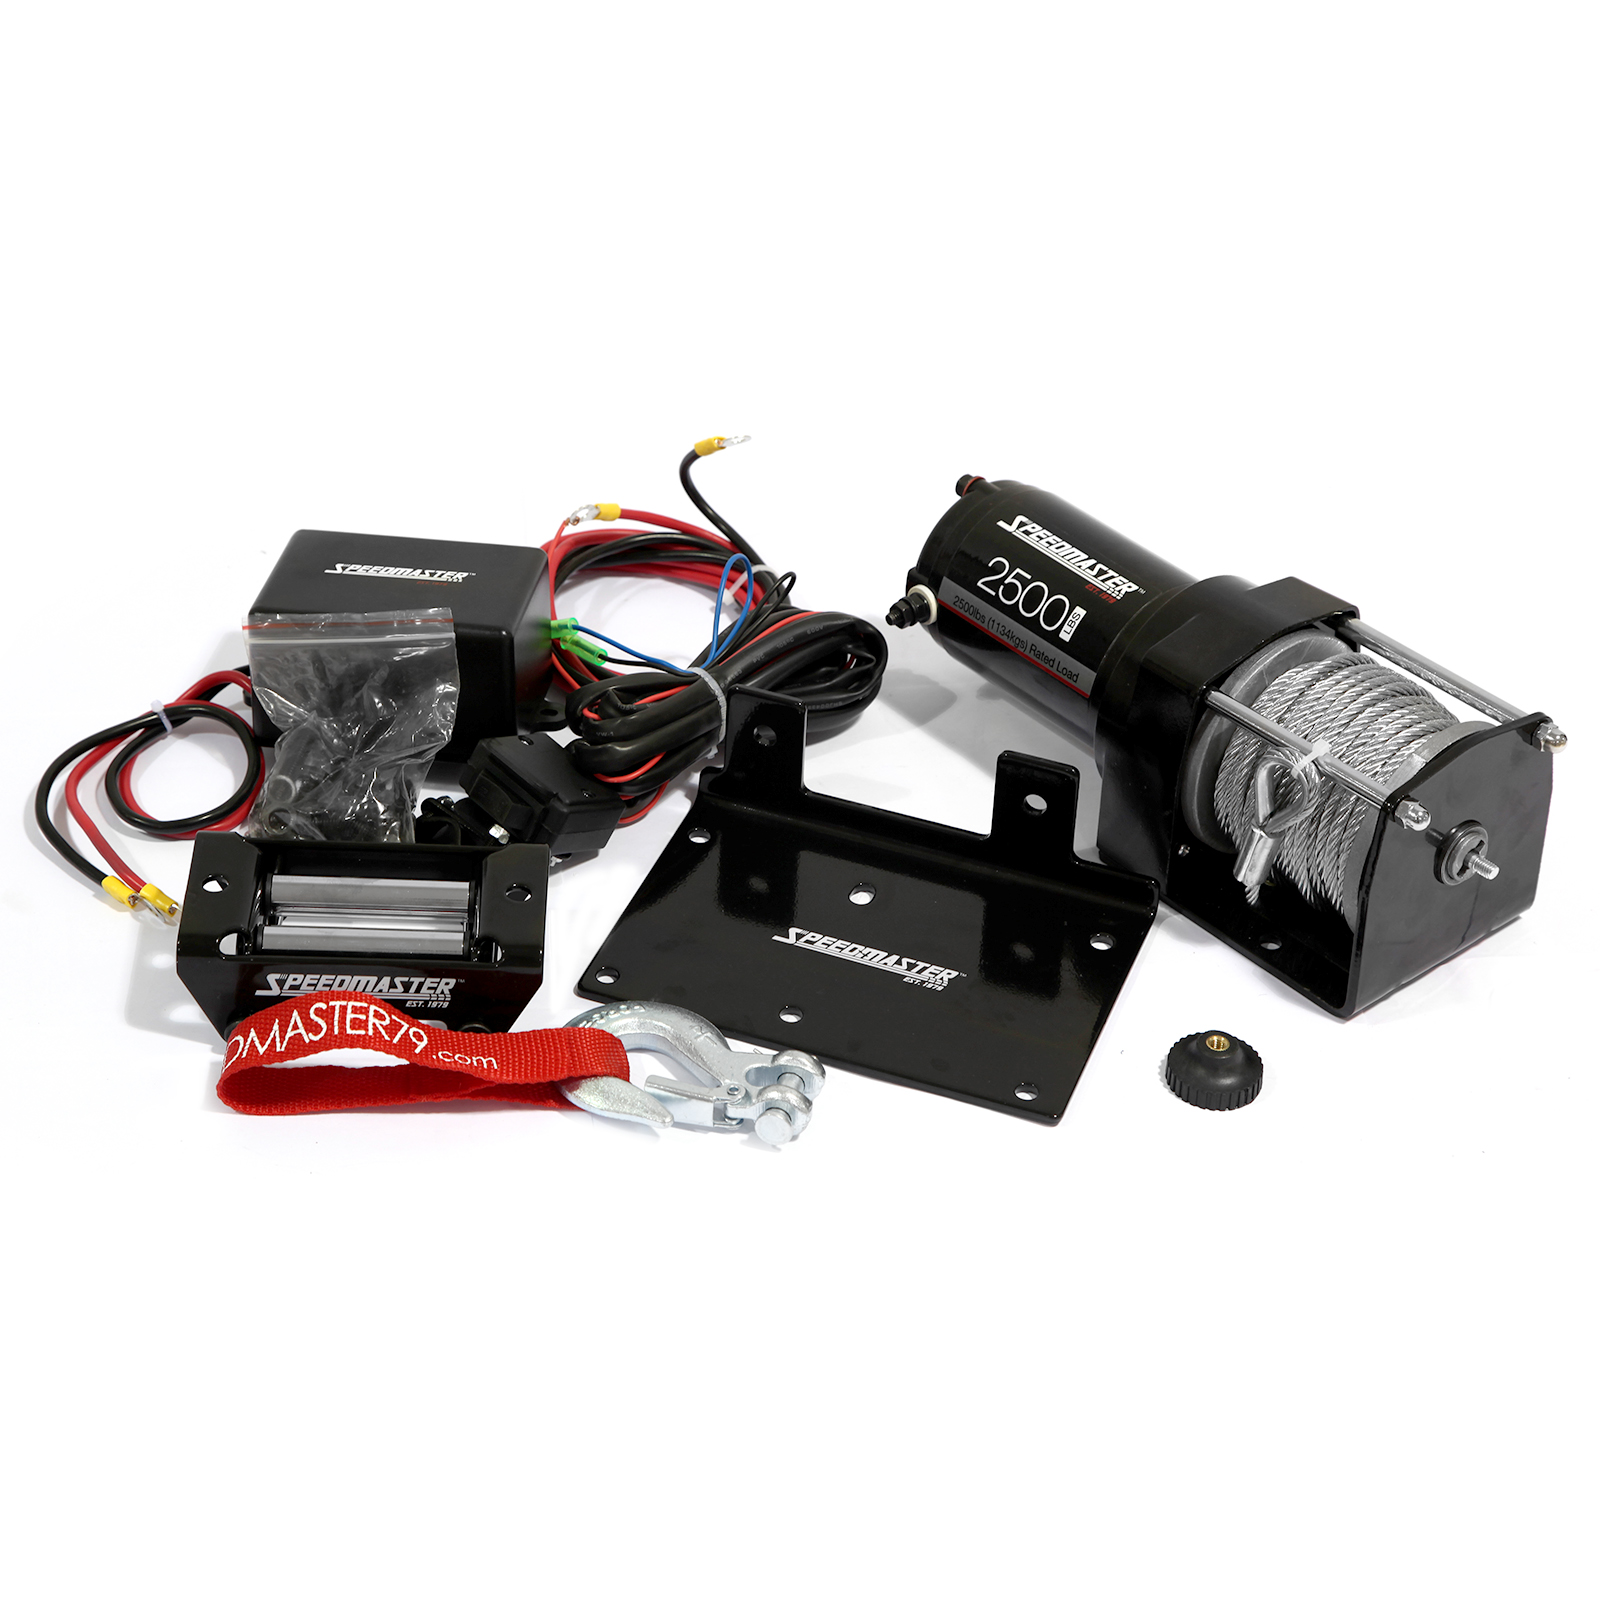 Speedmaster 2500lbs / 1130kgs 12V Electric ATV Winch Kit w/ Remote Switch